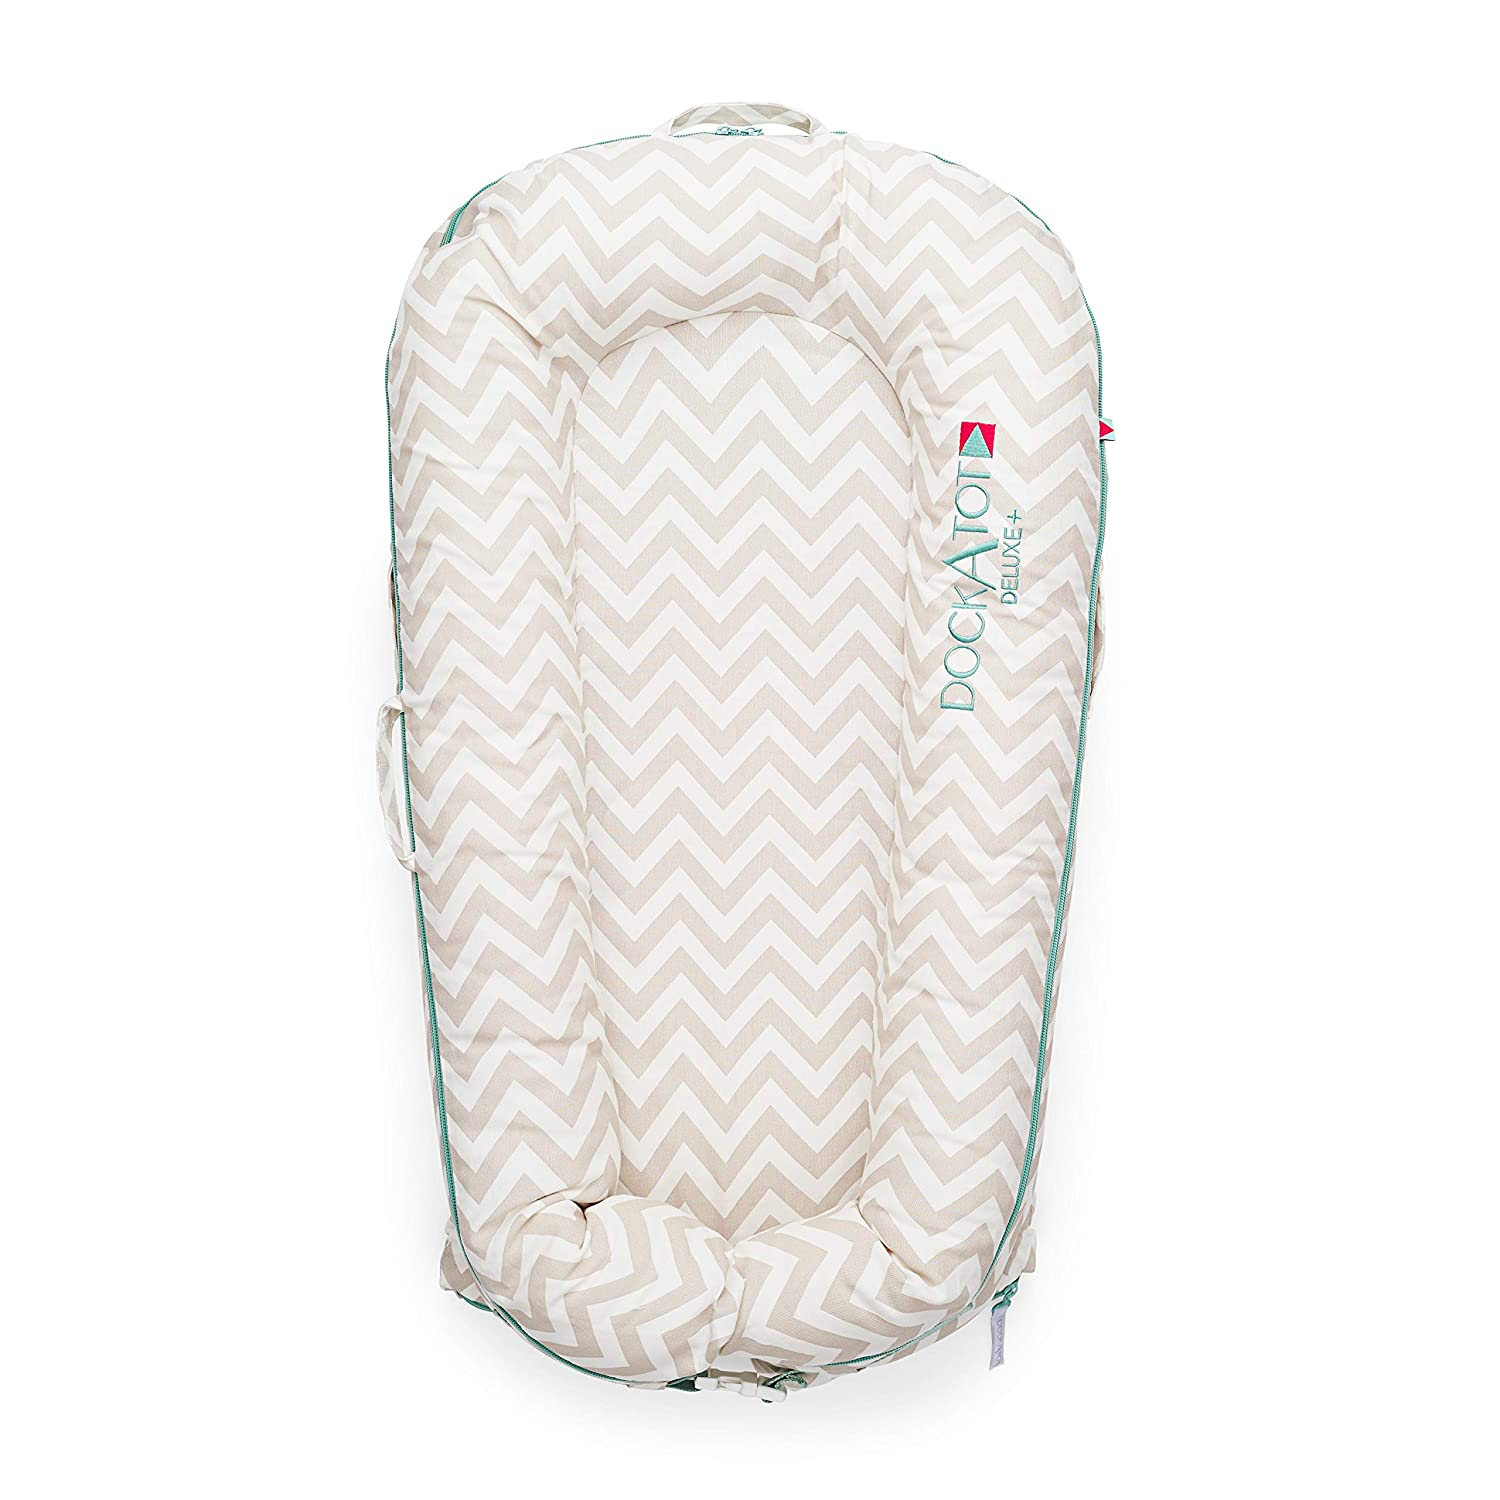 COVER ONLY (Strawberry Cream) for DockATot Deluxe+ Dock - DOCK SOLD SEPARATELY - Compatible with All DockATot Deluxe Docks 20102